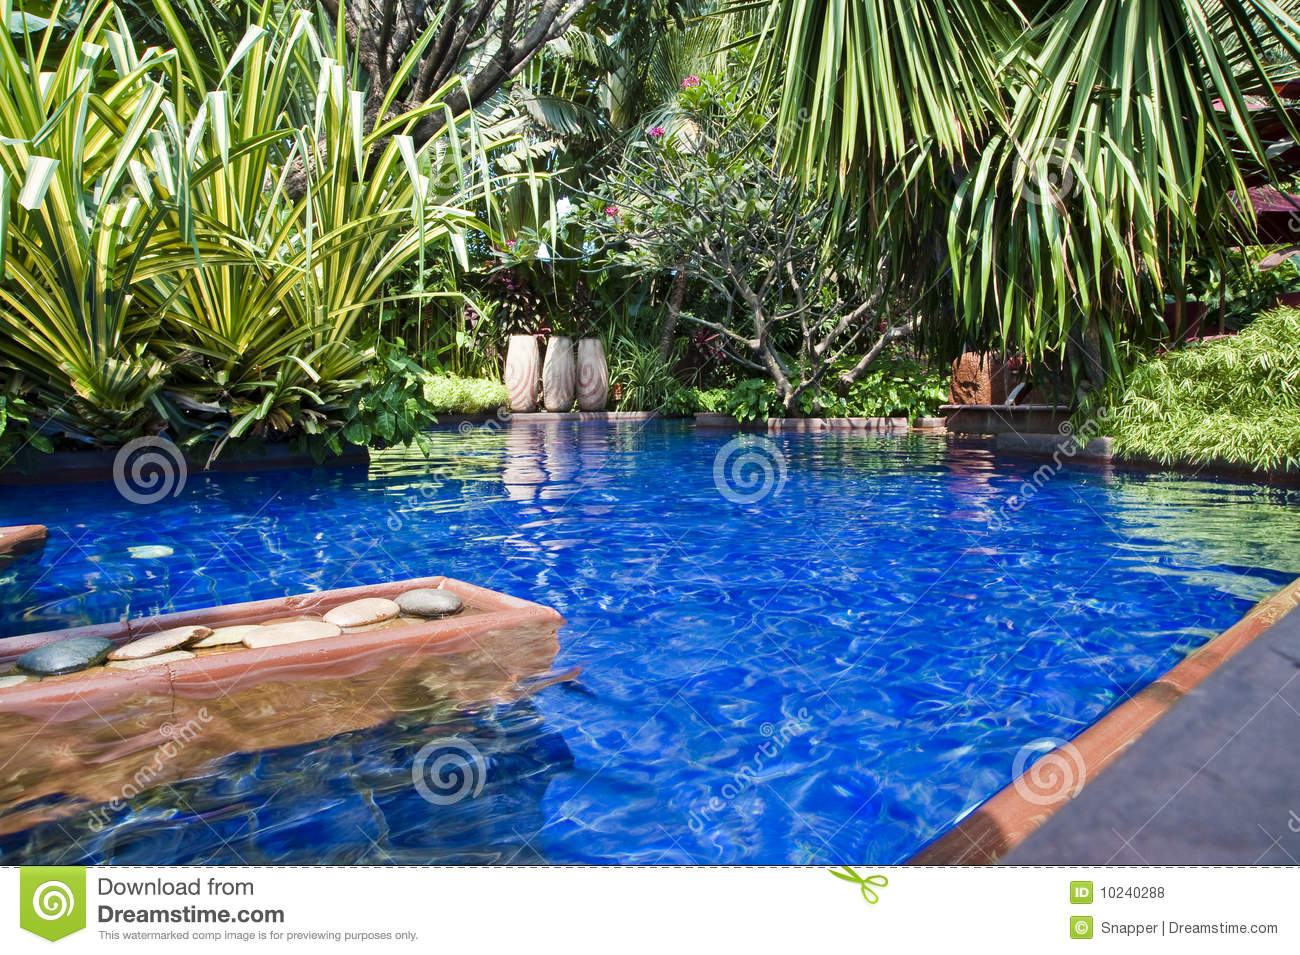 Tropical swimming pool stock photo. Image of azure, fountain - 10240288